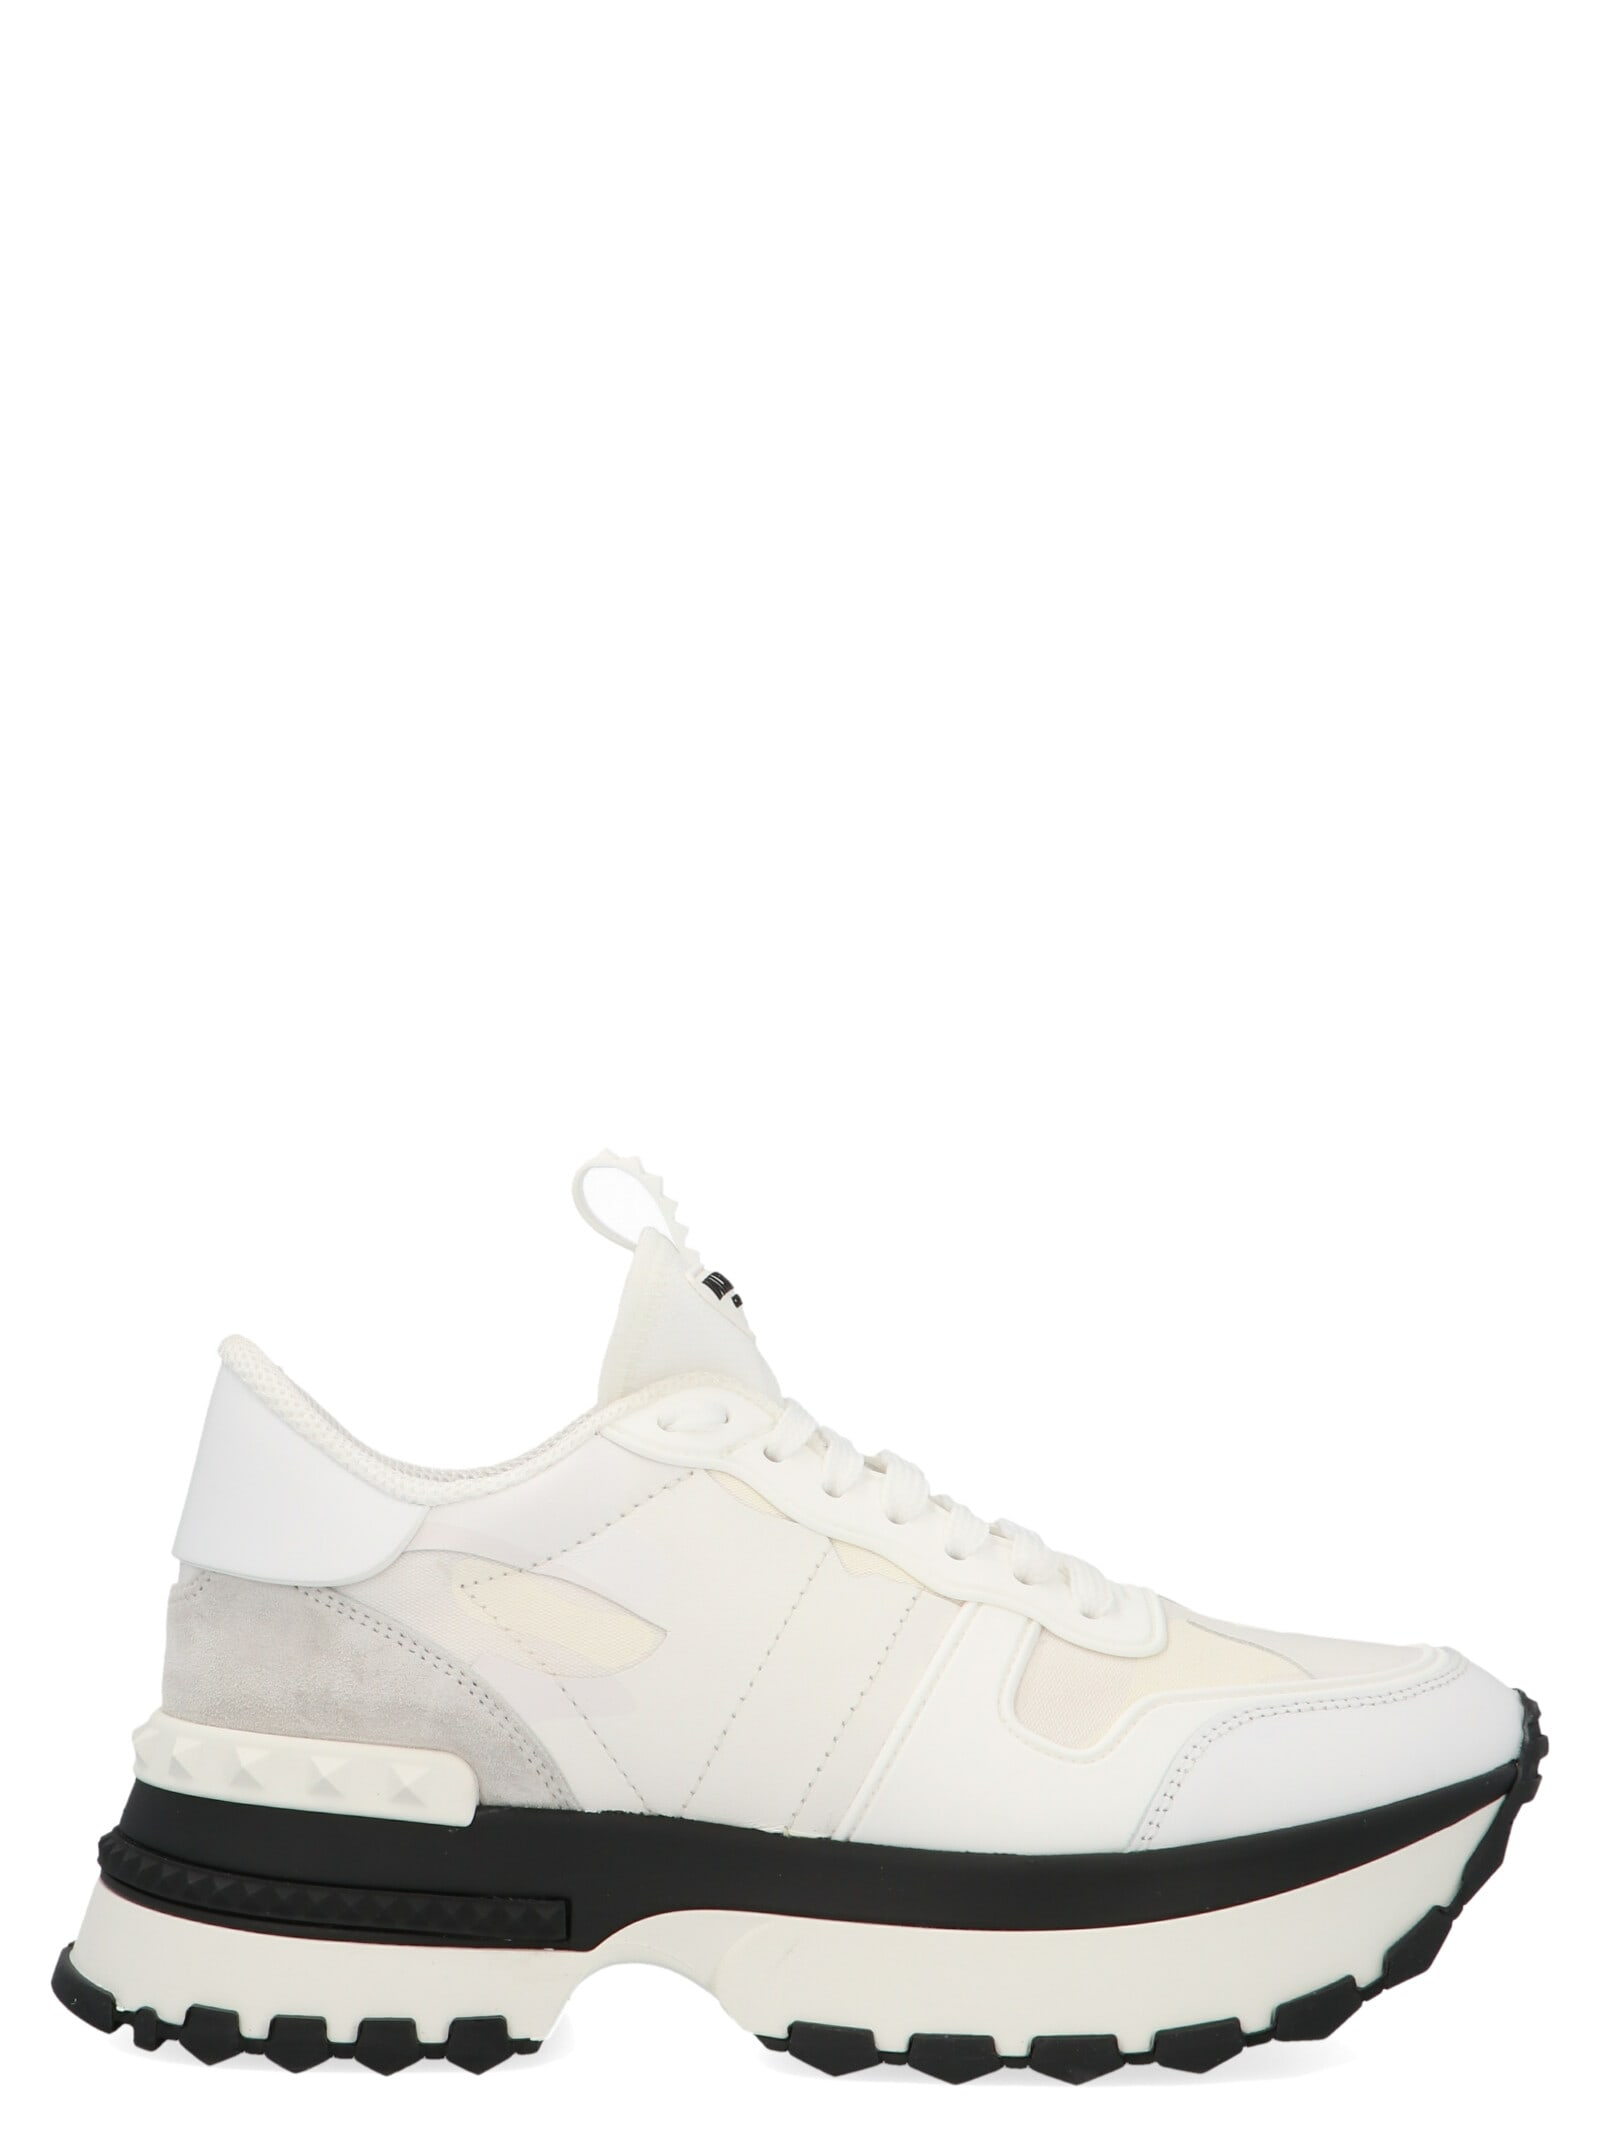 2018 sneakers promo codes great fit Valentino Garavani Valentino Garavani 'rockrunner.up' Shoes ...